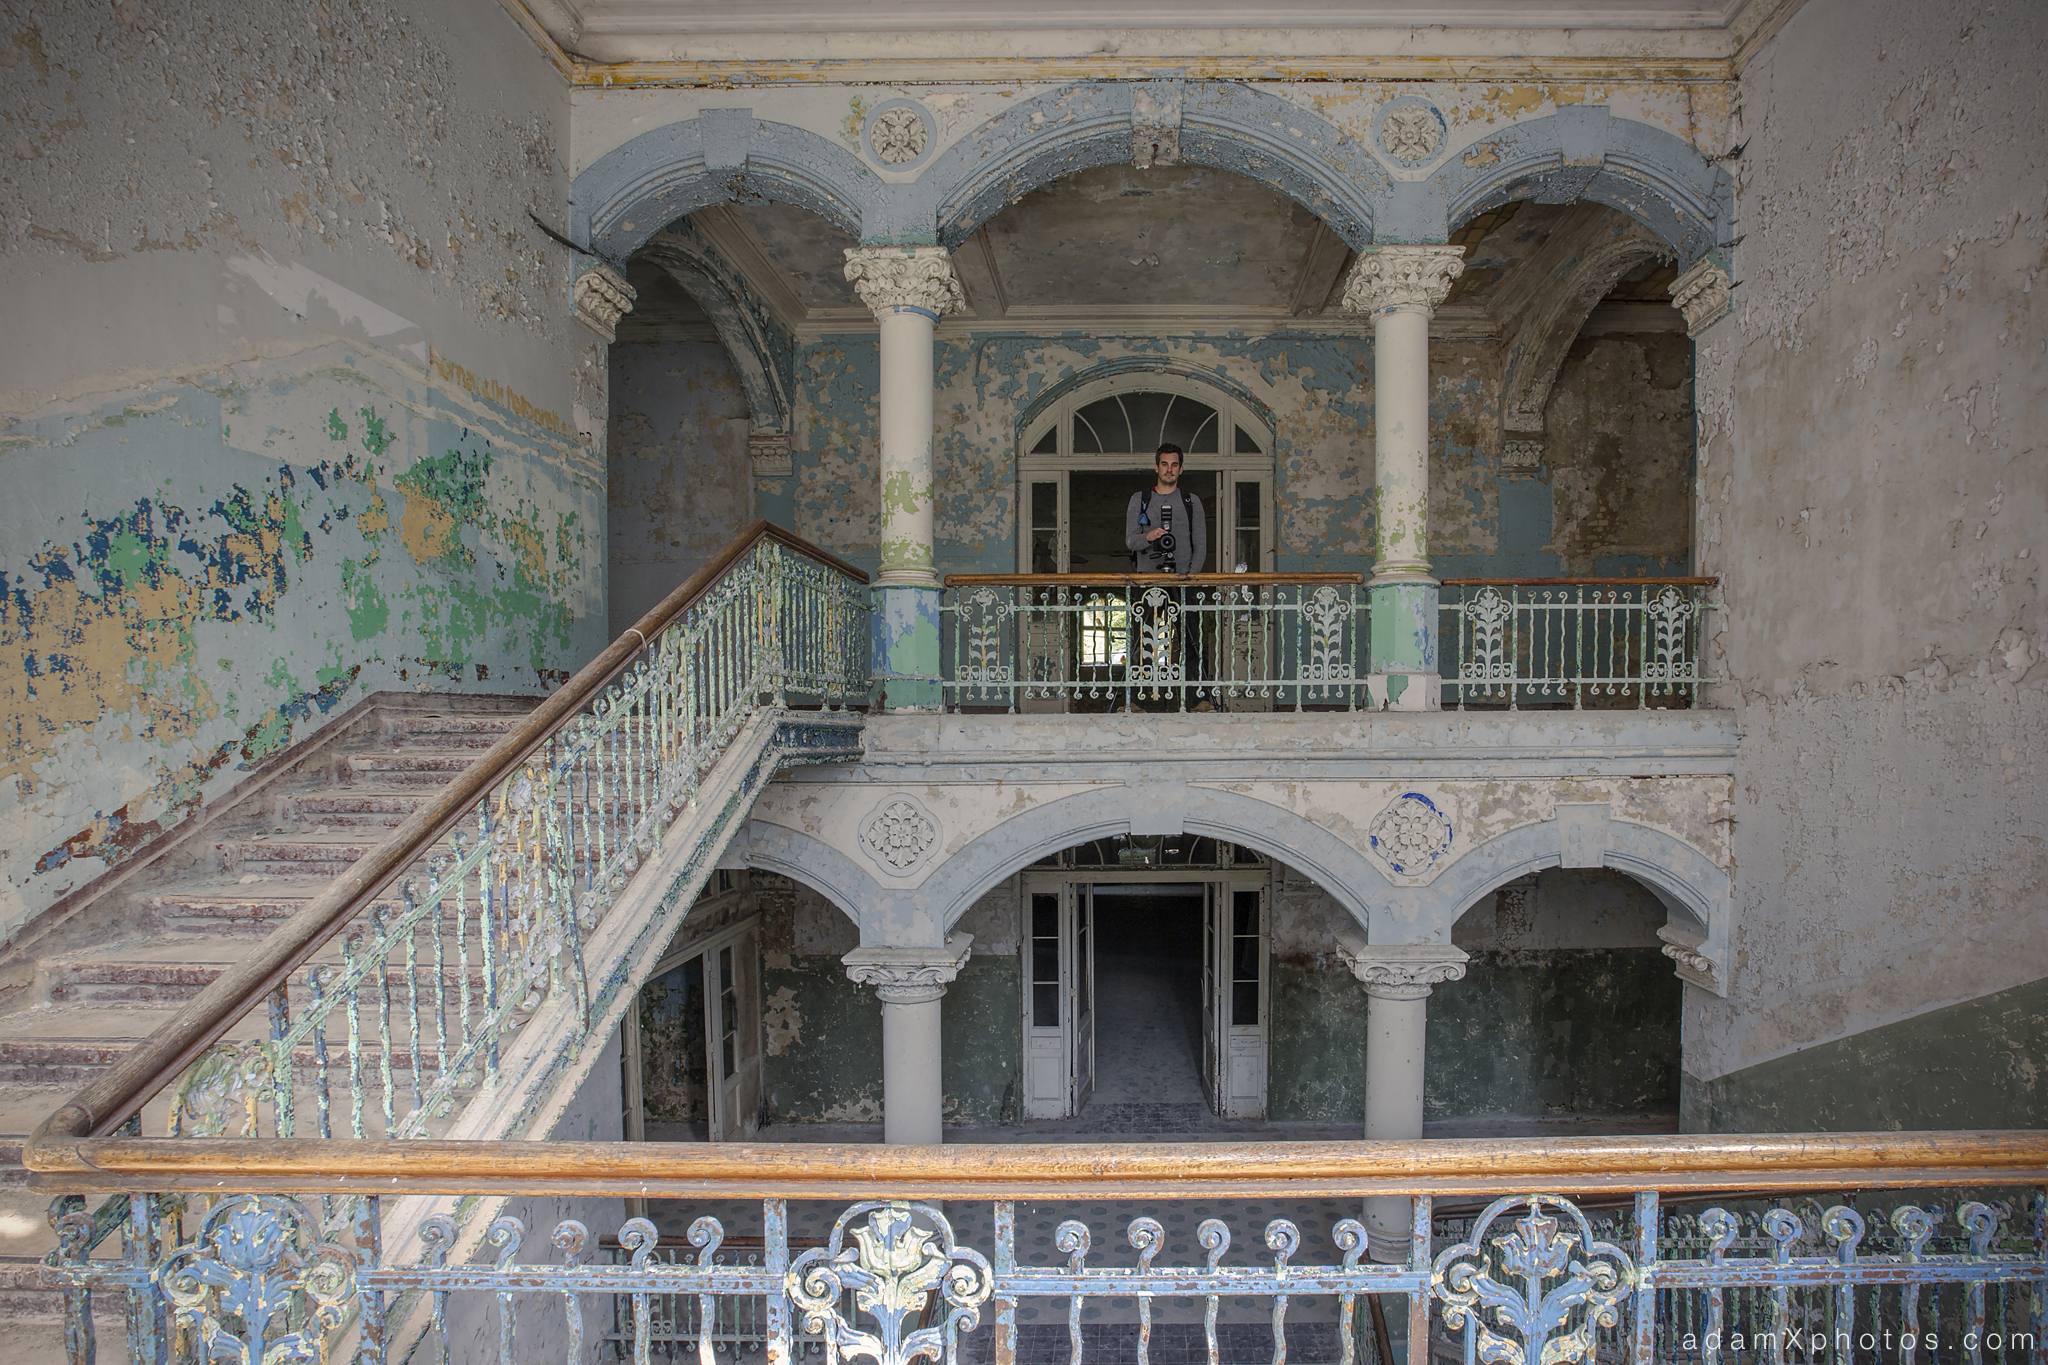 Adam X Urbex Beelitz Heilstatten Germany Urban Exploration Mens Men's Sanatorium Hospital Decay Lost Abandoned Hidden Entrance stairs staircase James Kerwin Photographic portrait